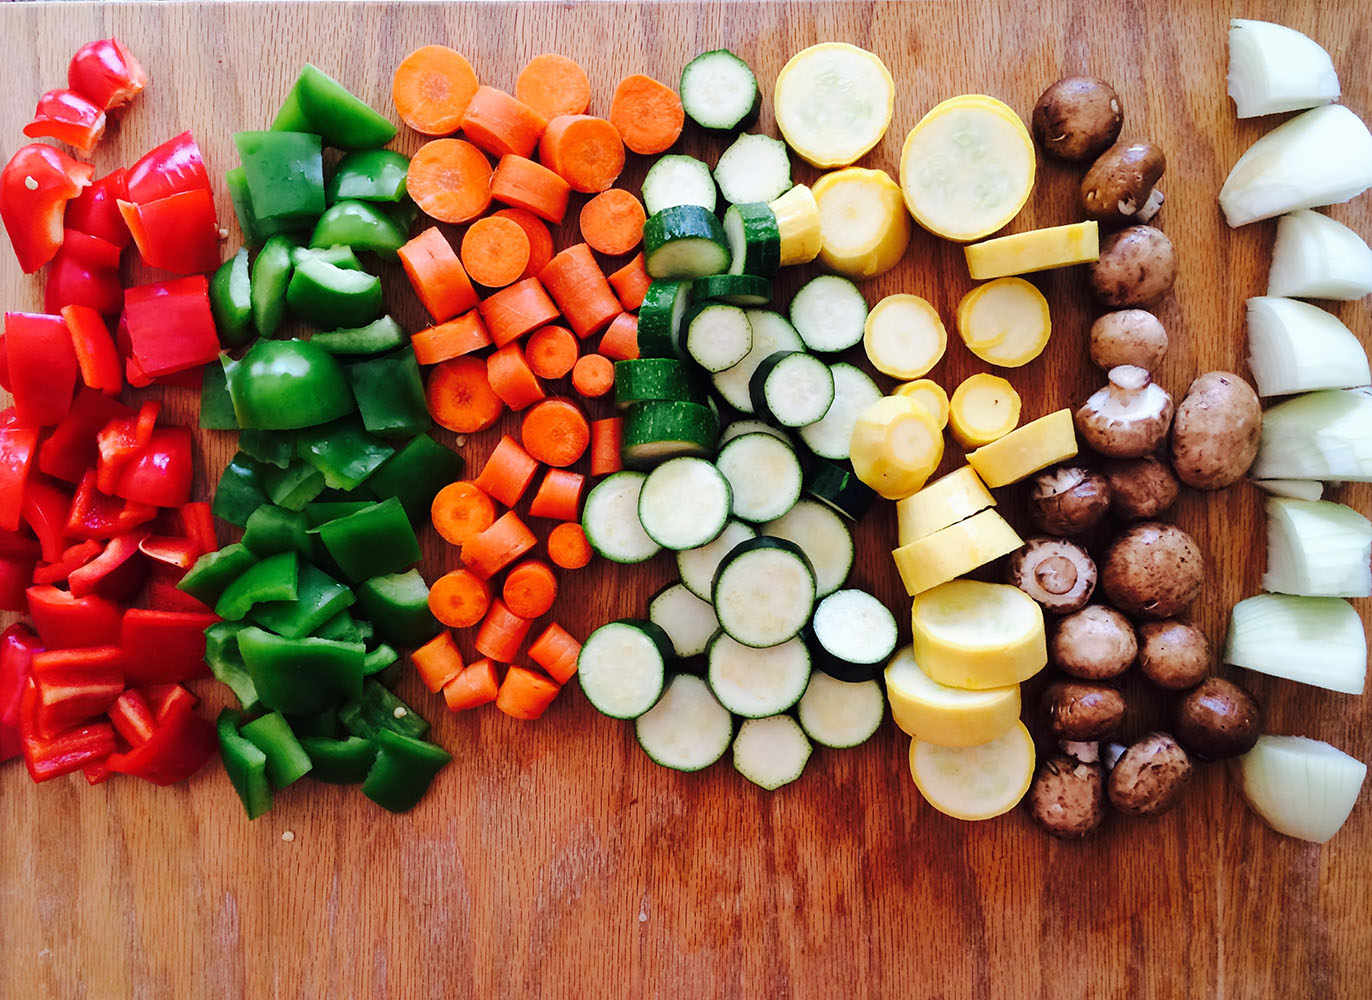 chopped peppers, carrots, mushrooms, union, cucumber vegetables